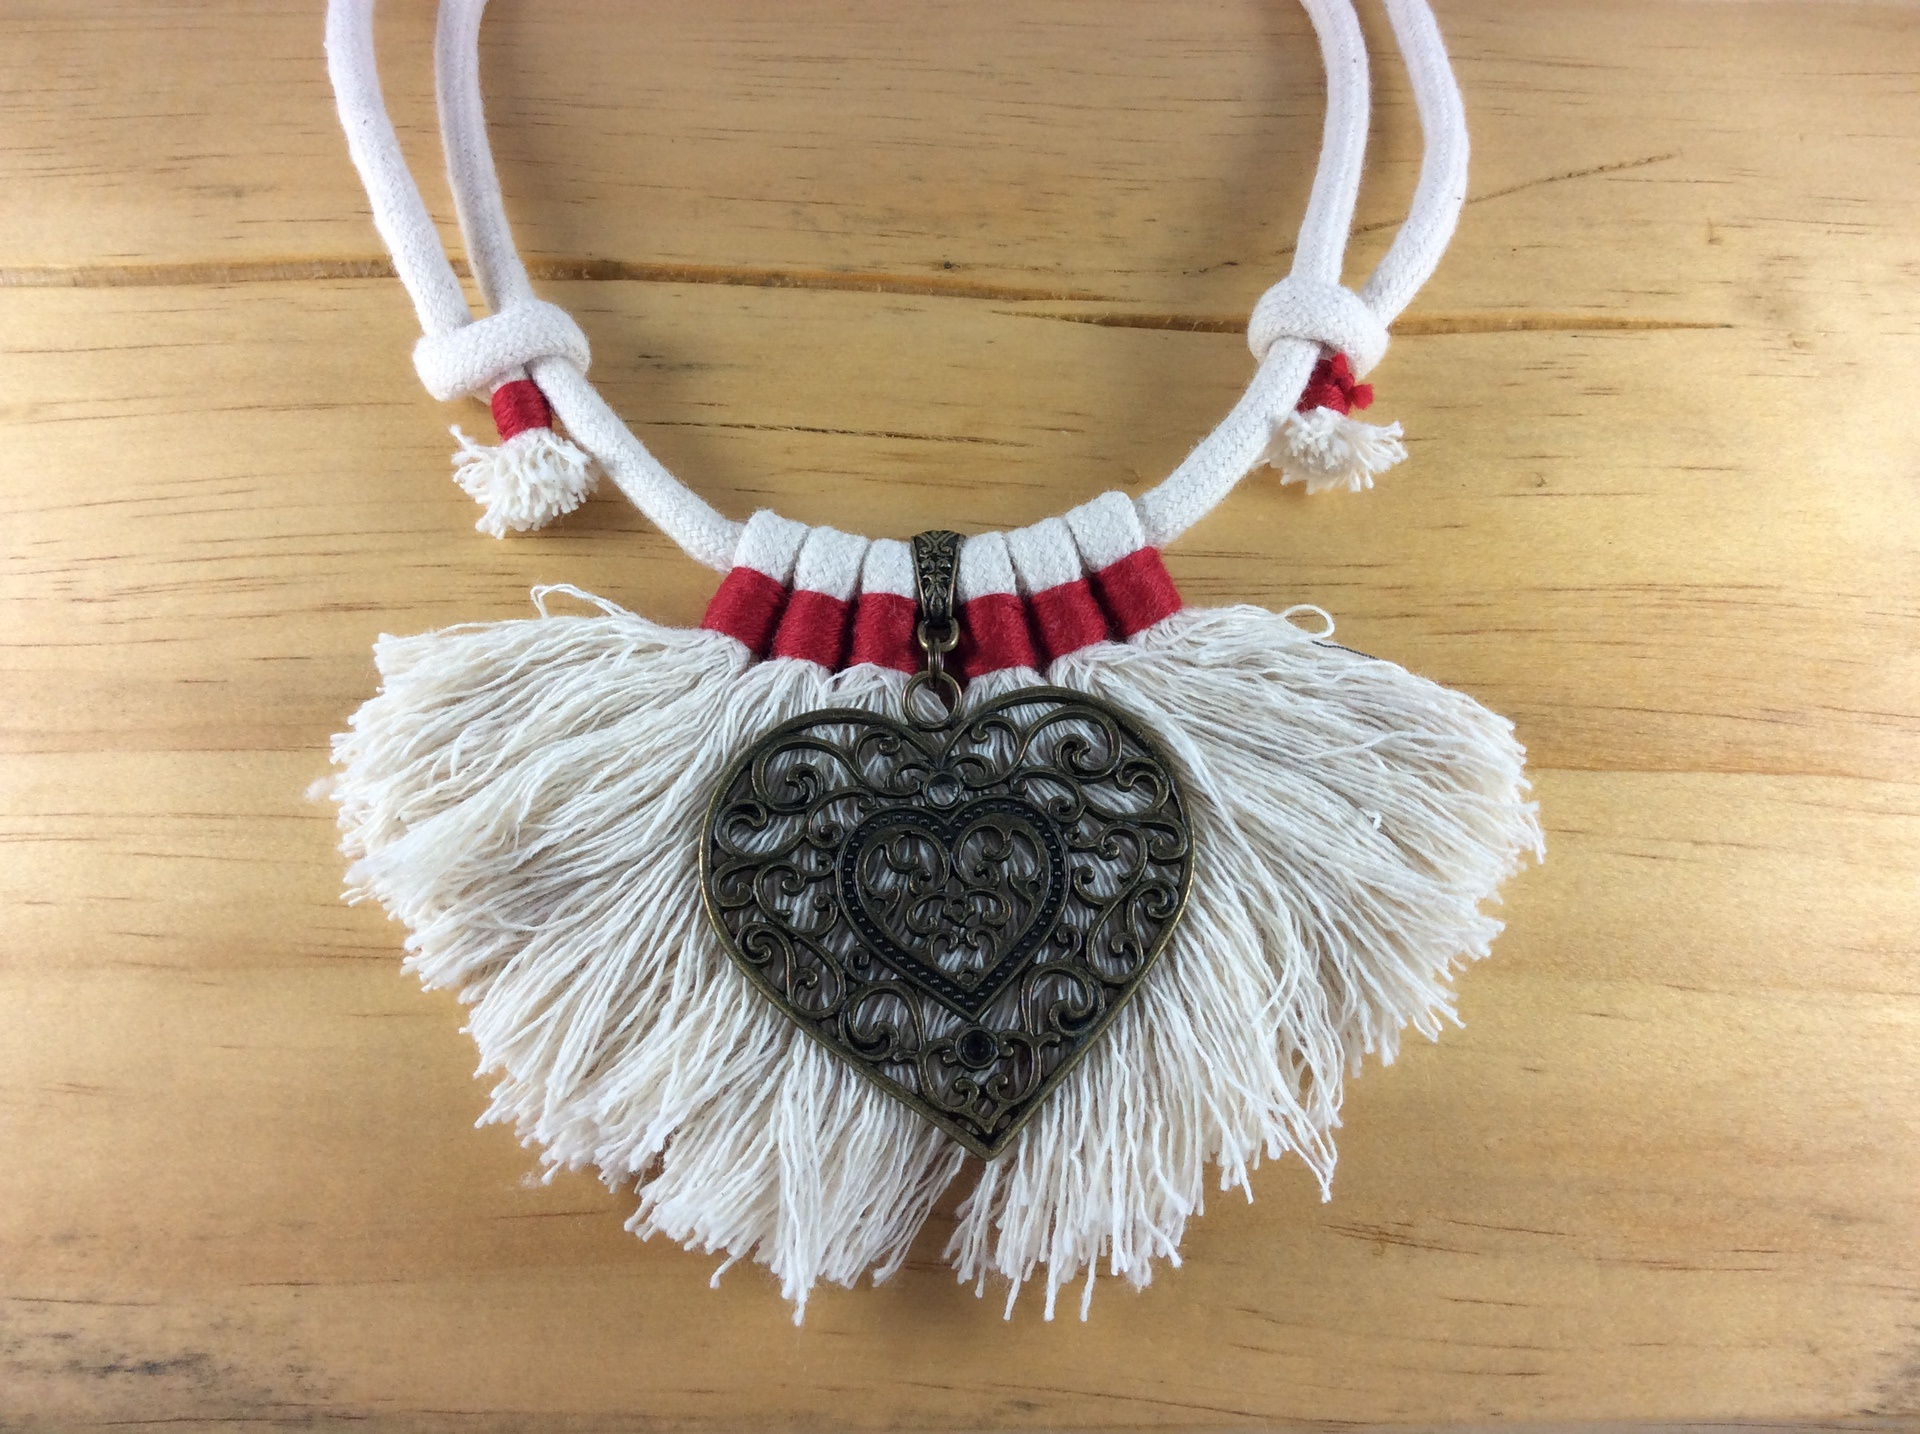 Syx Frayed Lines 'Long Fray' Frayed Cotton Necklace in Mars Red and Double Heart Accent